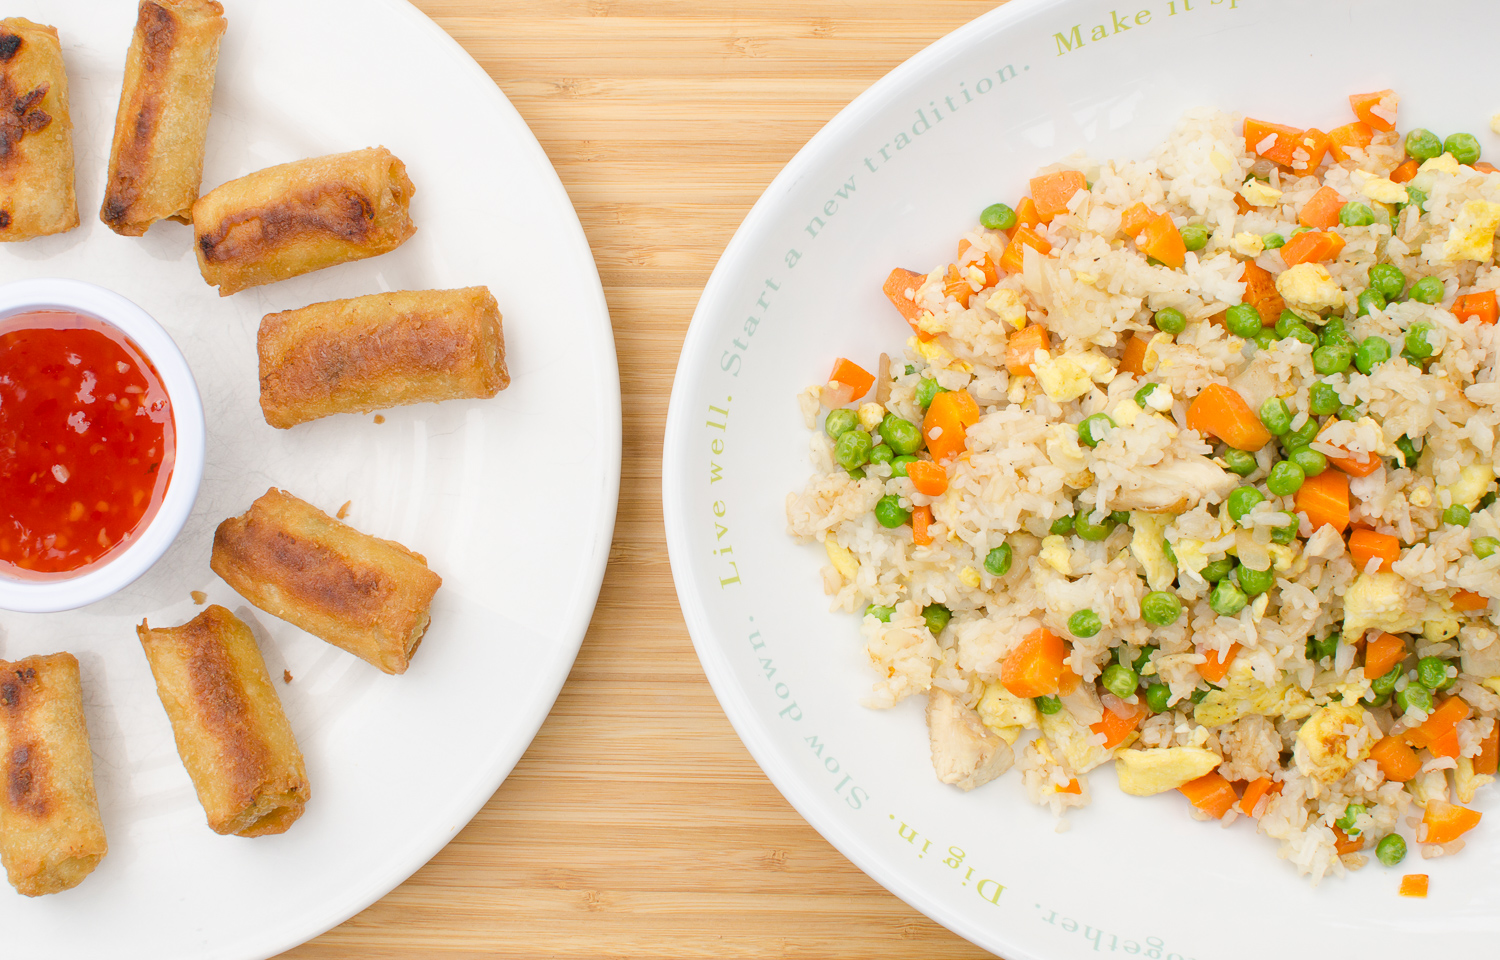 Fried Rice Recipe: The BEST Way to Use Up Leftovers